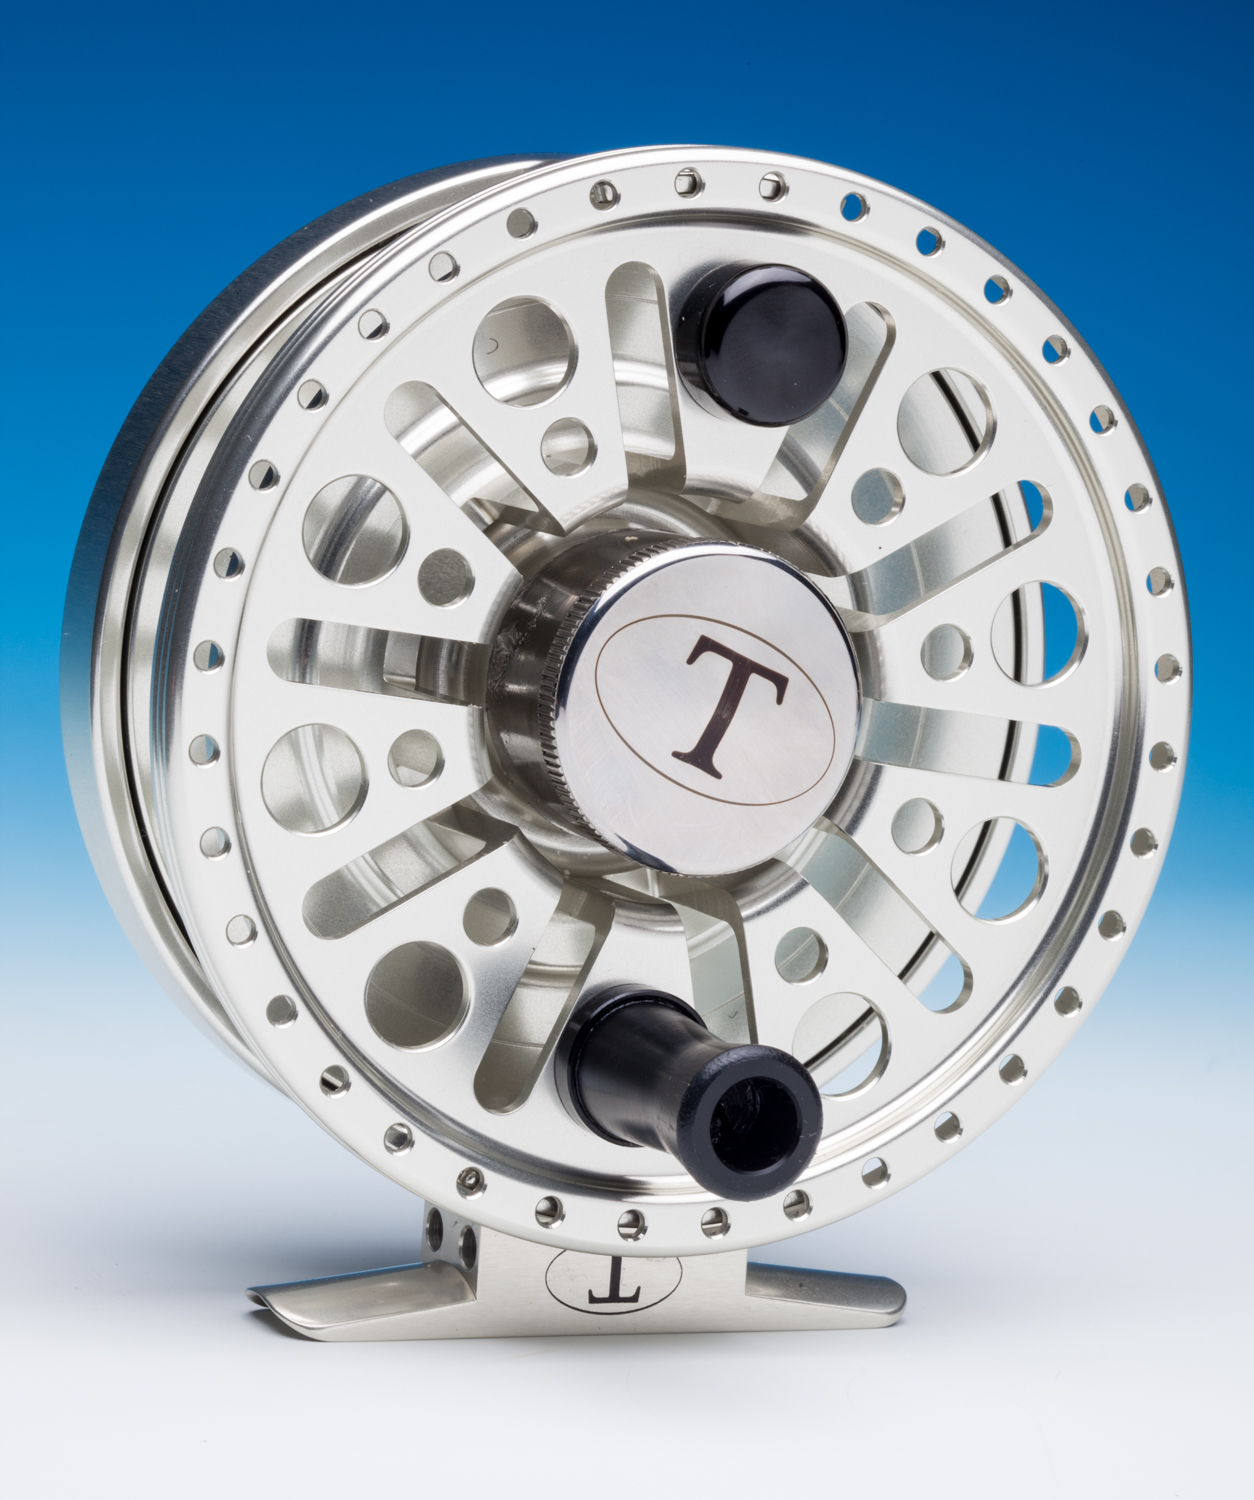 Fishing reel photograph on white and blue background.